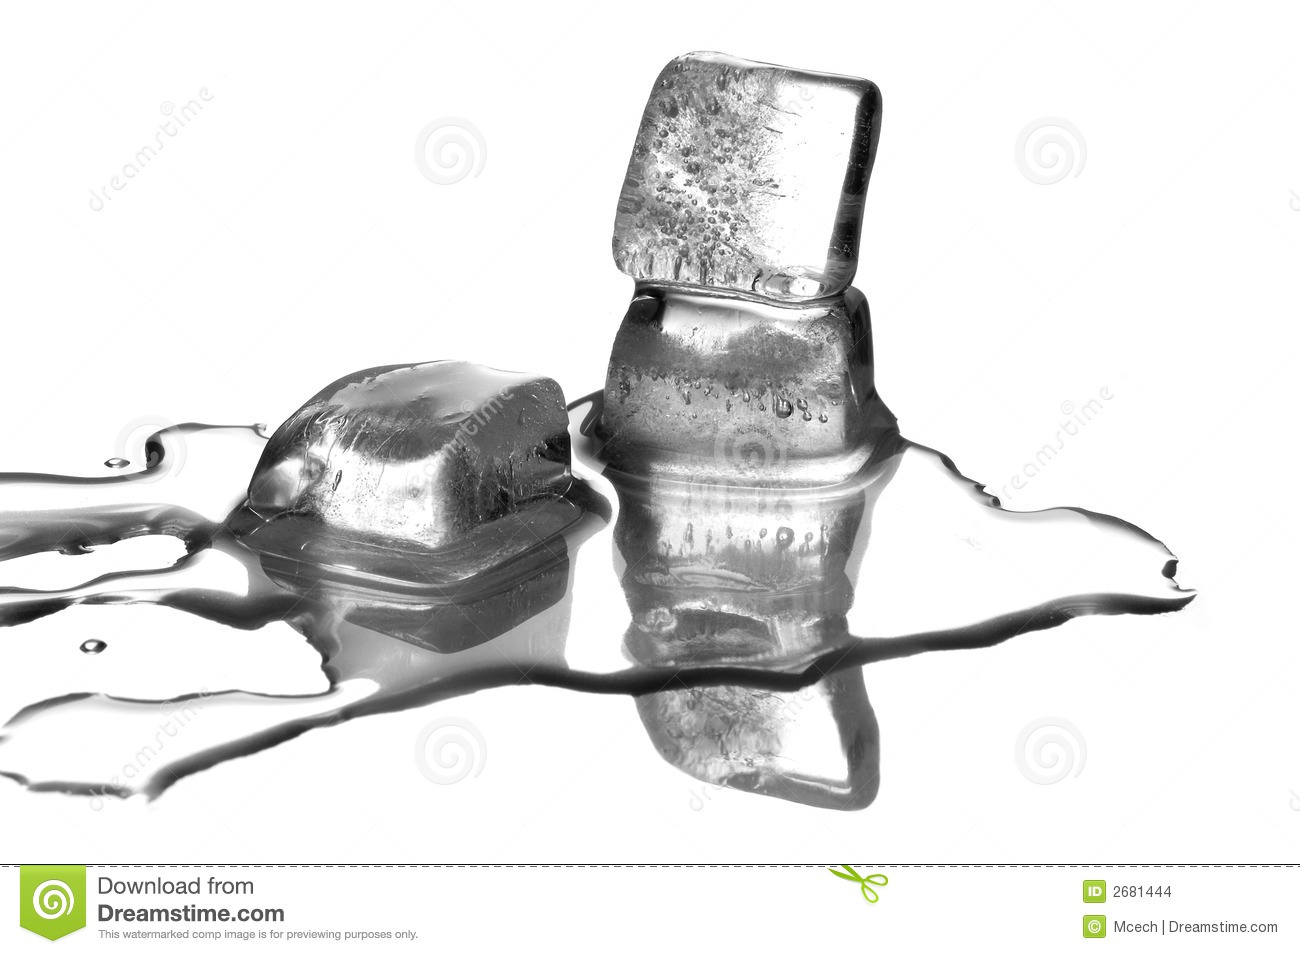 Stock Images Melting Ice Cubes Image2681444 in addition R8 also Homework and Drawings 2014 2015 as well Royalty Free Stock Photo Black Calculator Icons Set Isolated White Background Image39005675 together with 981844 Equipment Parts 4. on area calculator